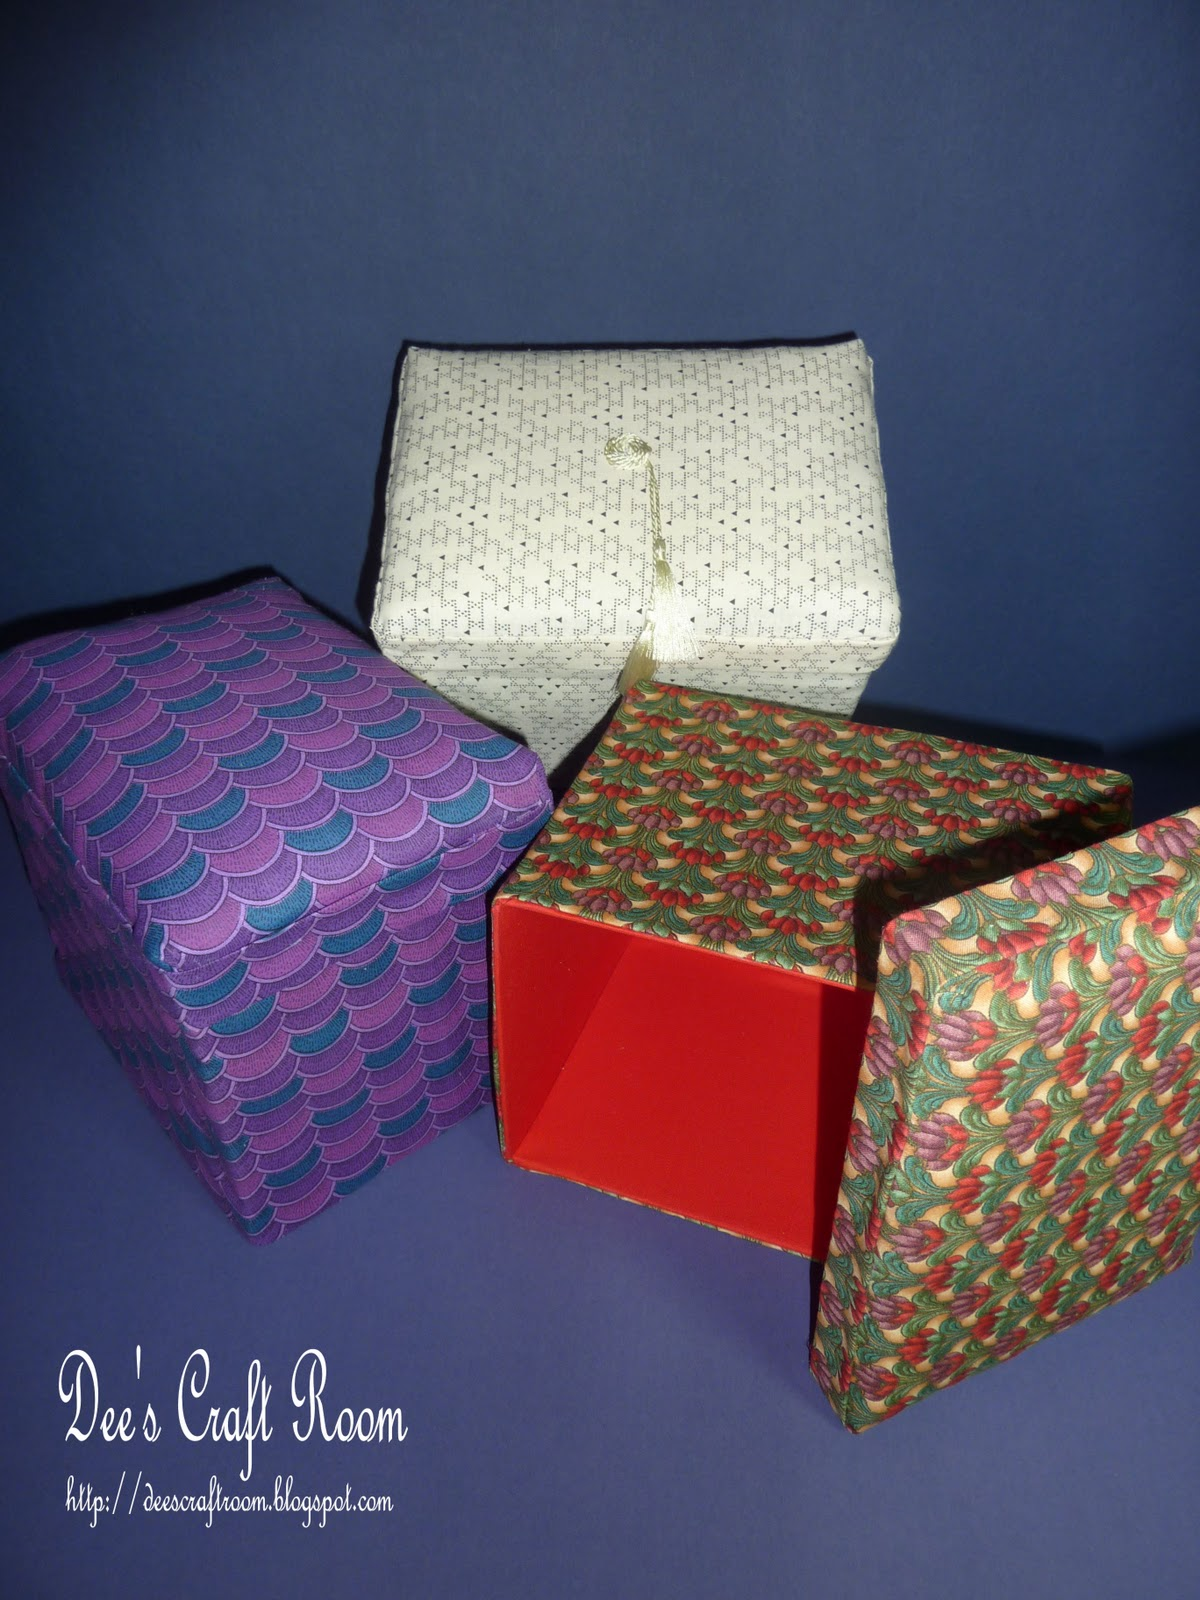 Dee 39 s craft room off the page hand made fabric covered box for Fabric covered boxes craft